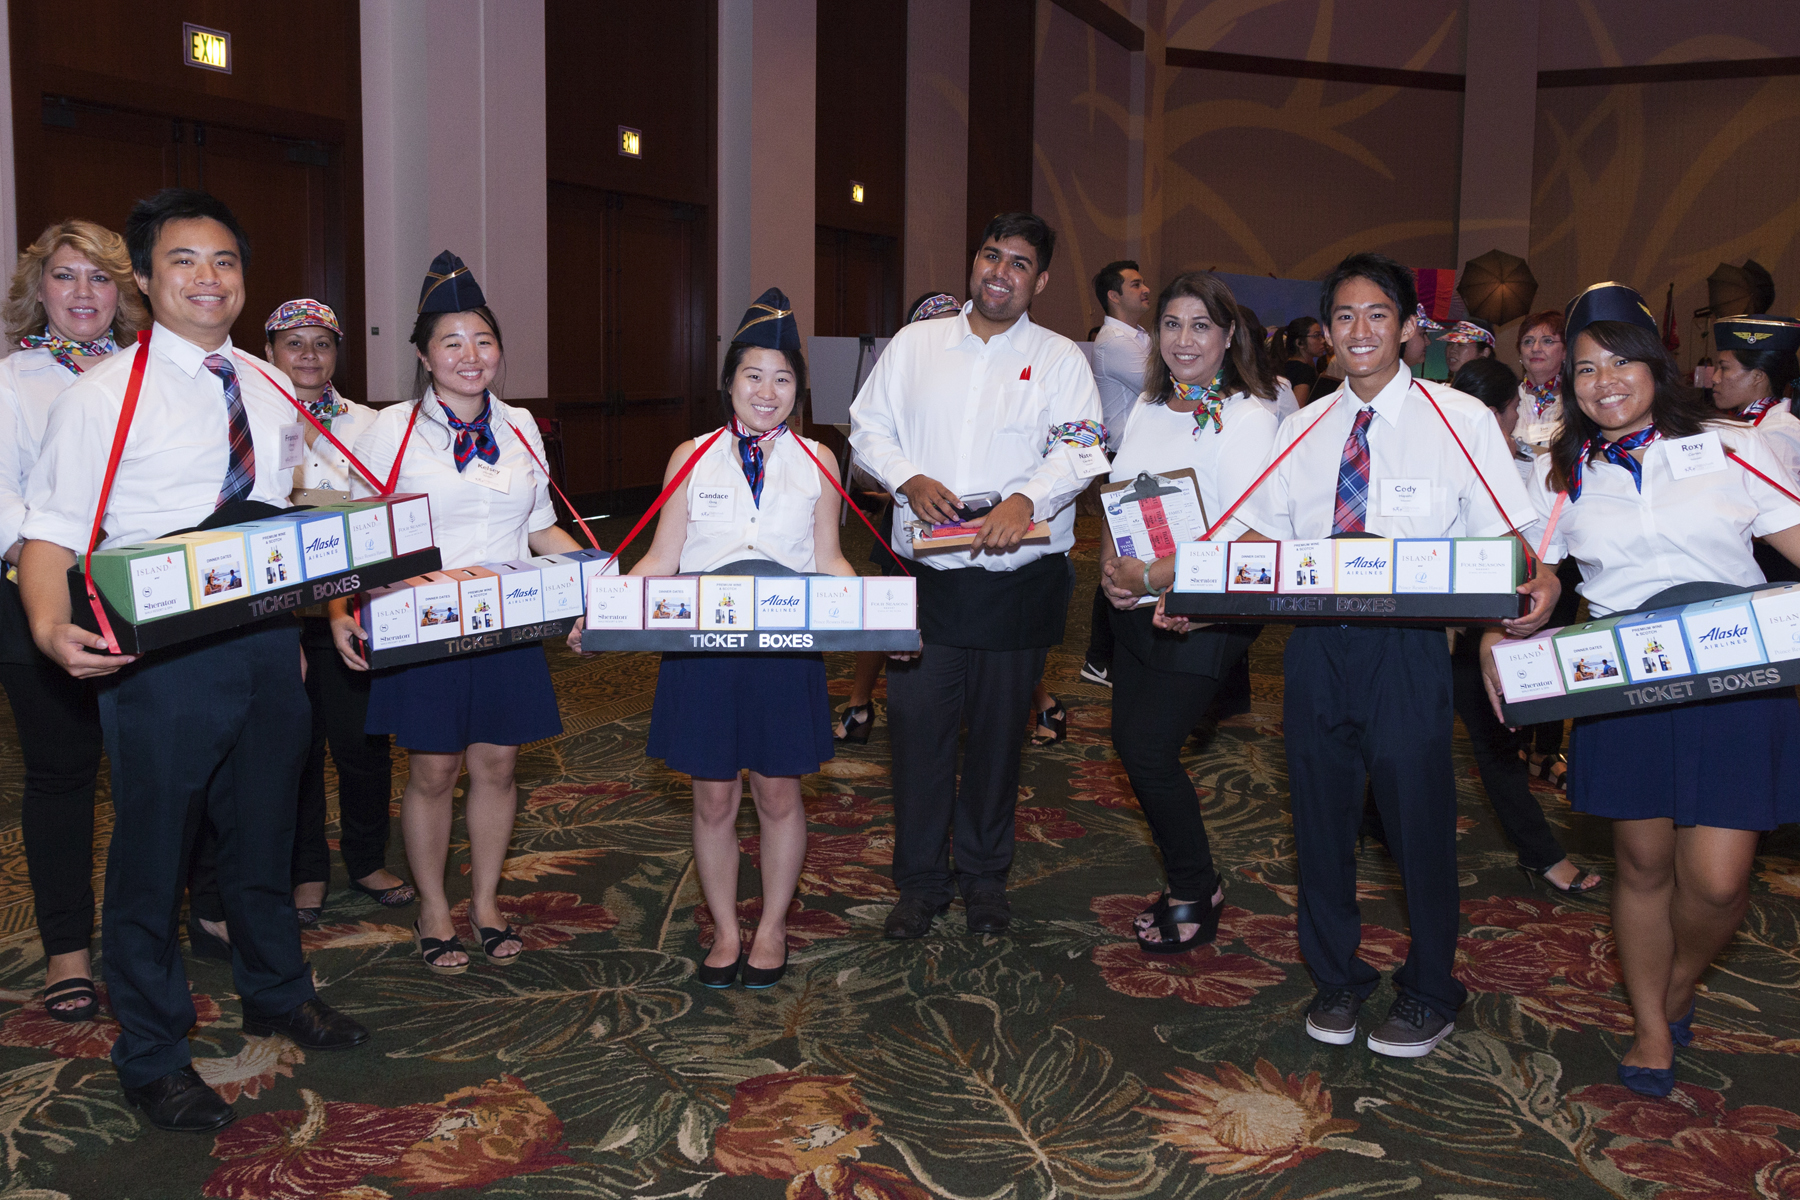 """2016 AN EVENING AROUND THE WORLD: Our great volunteer """"flight attendants"""" roamed the ballroom for guests to make donations."""